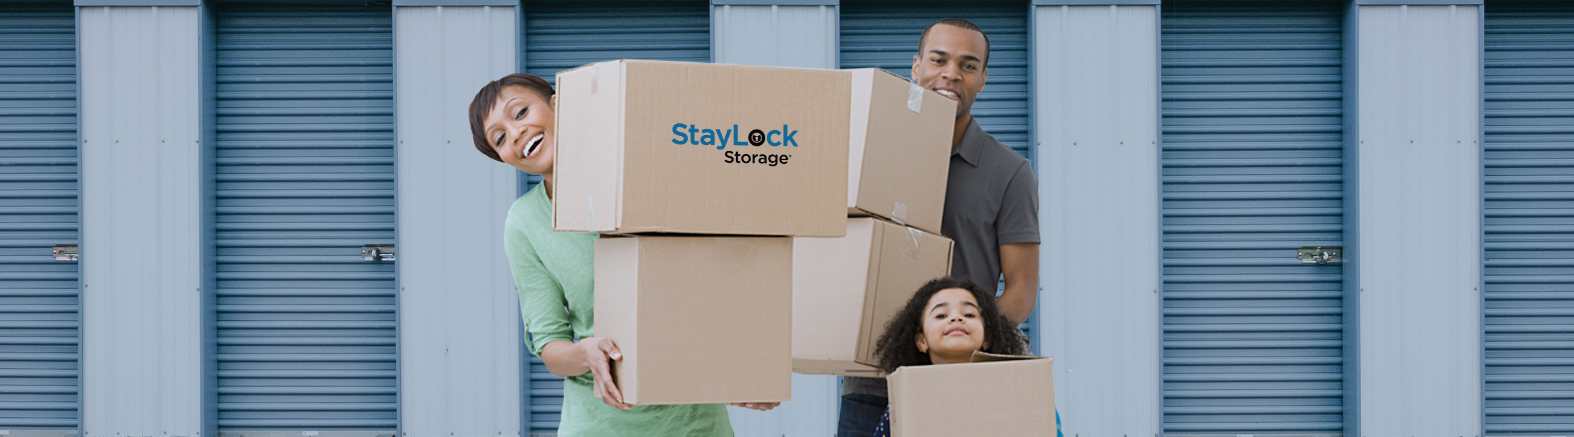 Staylock Storage Family